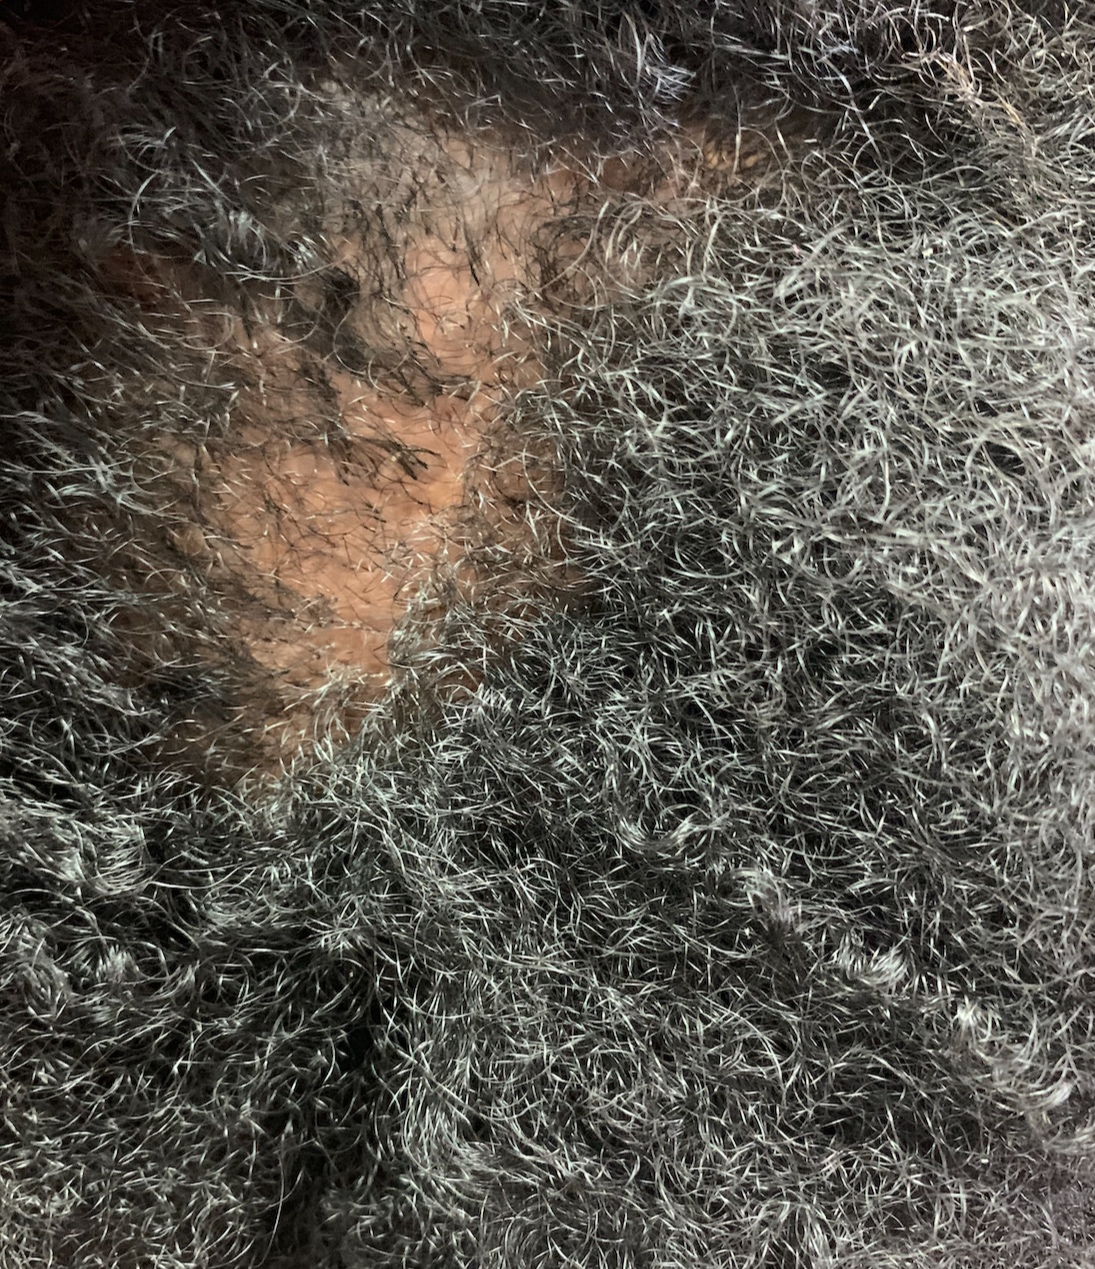 This auto immune disease attacks your own body. It attacks your hair follicles . this causes the hair to come out in clumps and missing hair spots can be the size of a quarter. There are treatments to help grow the hair quickly. But why let it get there when you can just prevent it.